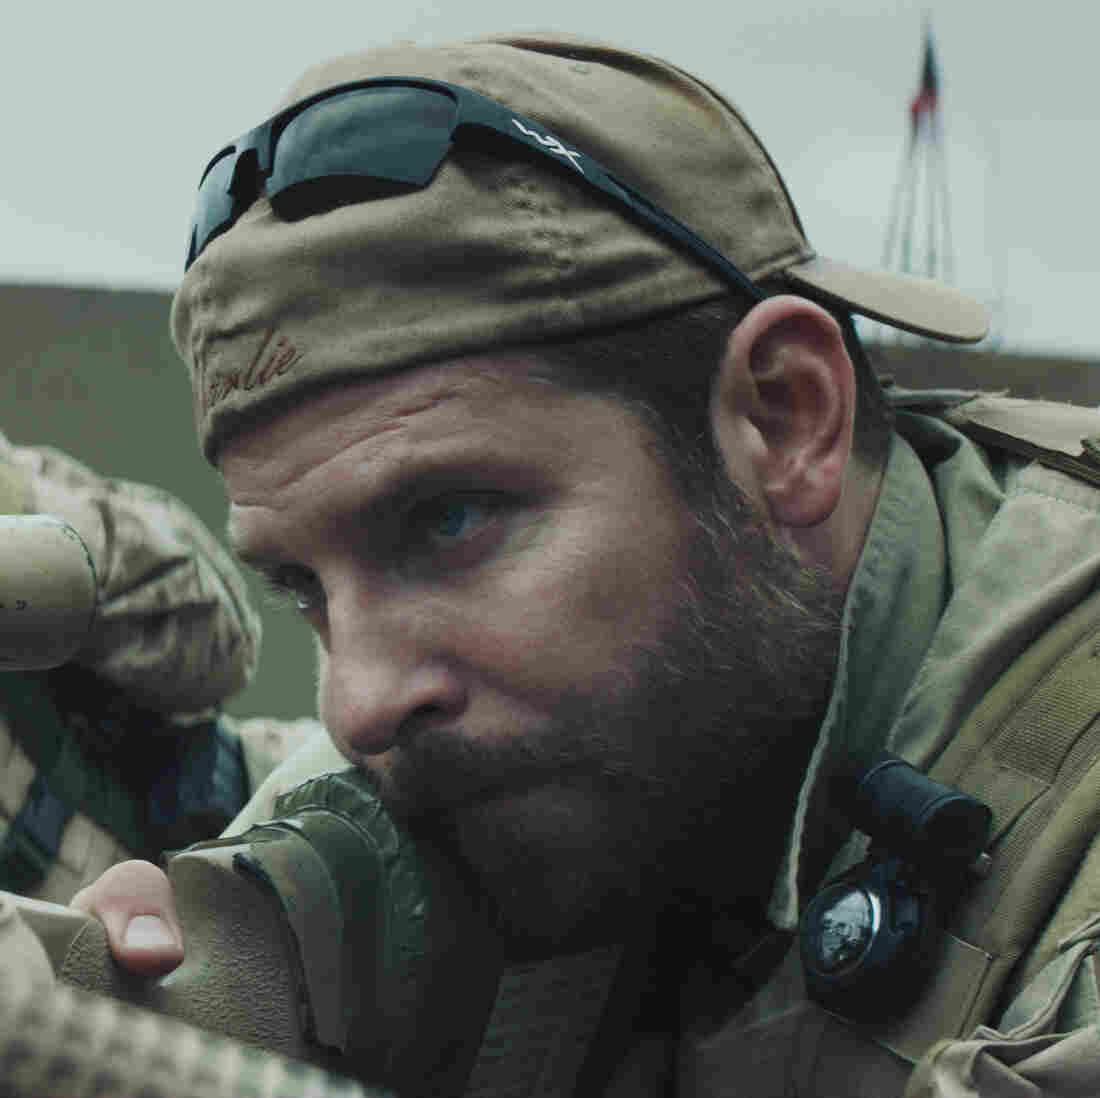 Full Of Complexity And Ambivalence, 'American Sniper' Shows The Cost Of War